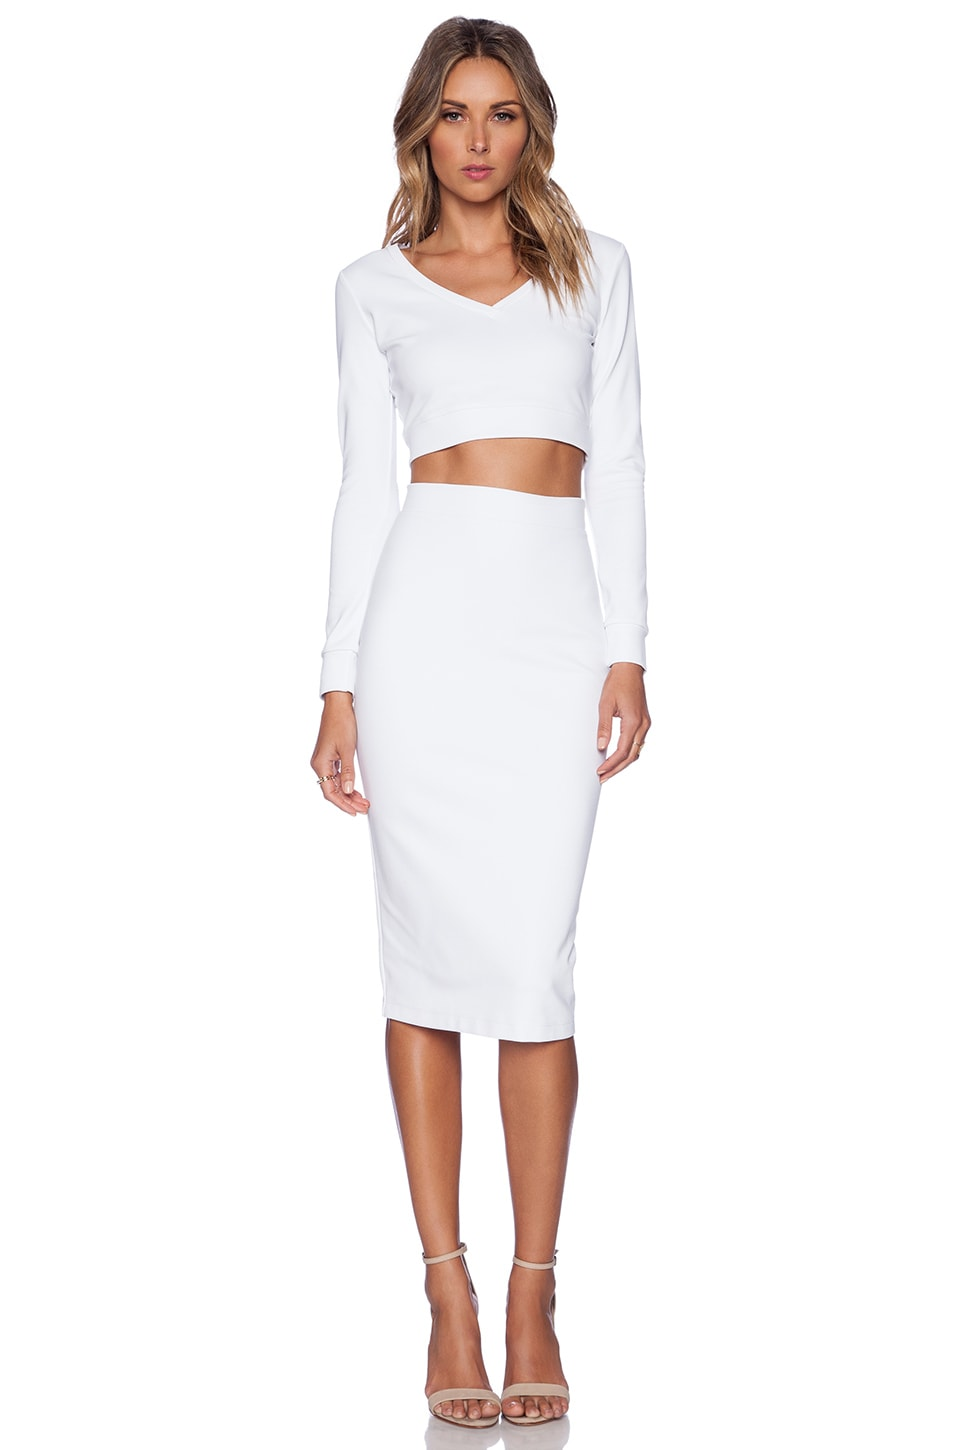 Black Halo Marett Two Piece Set in White